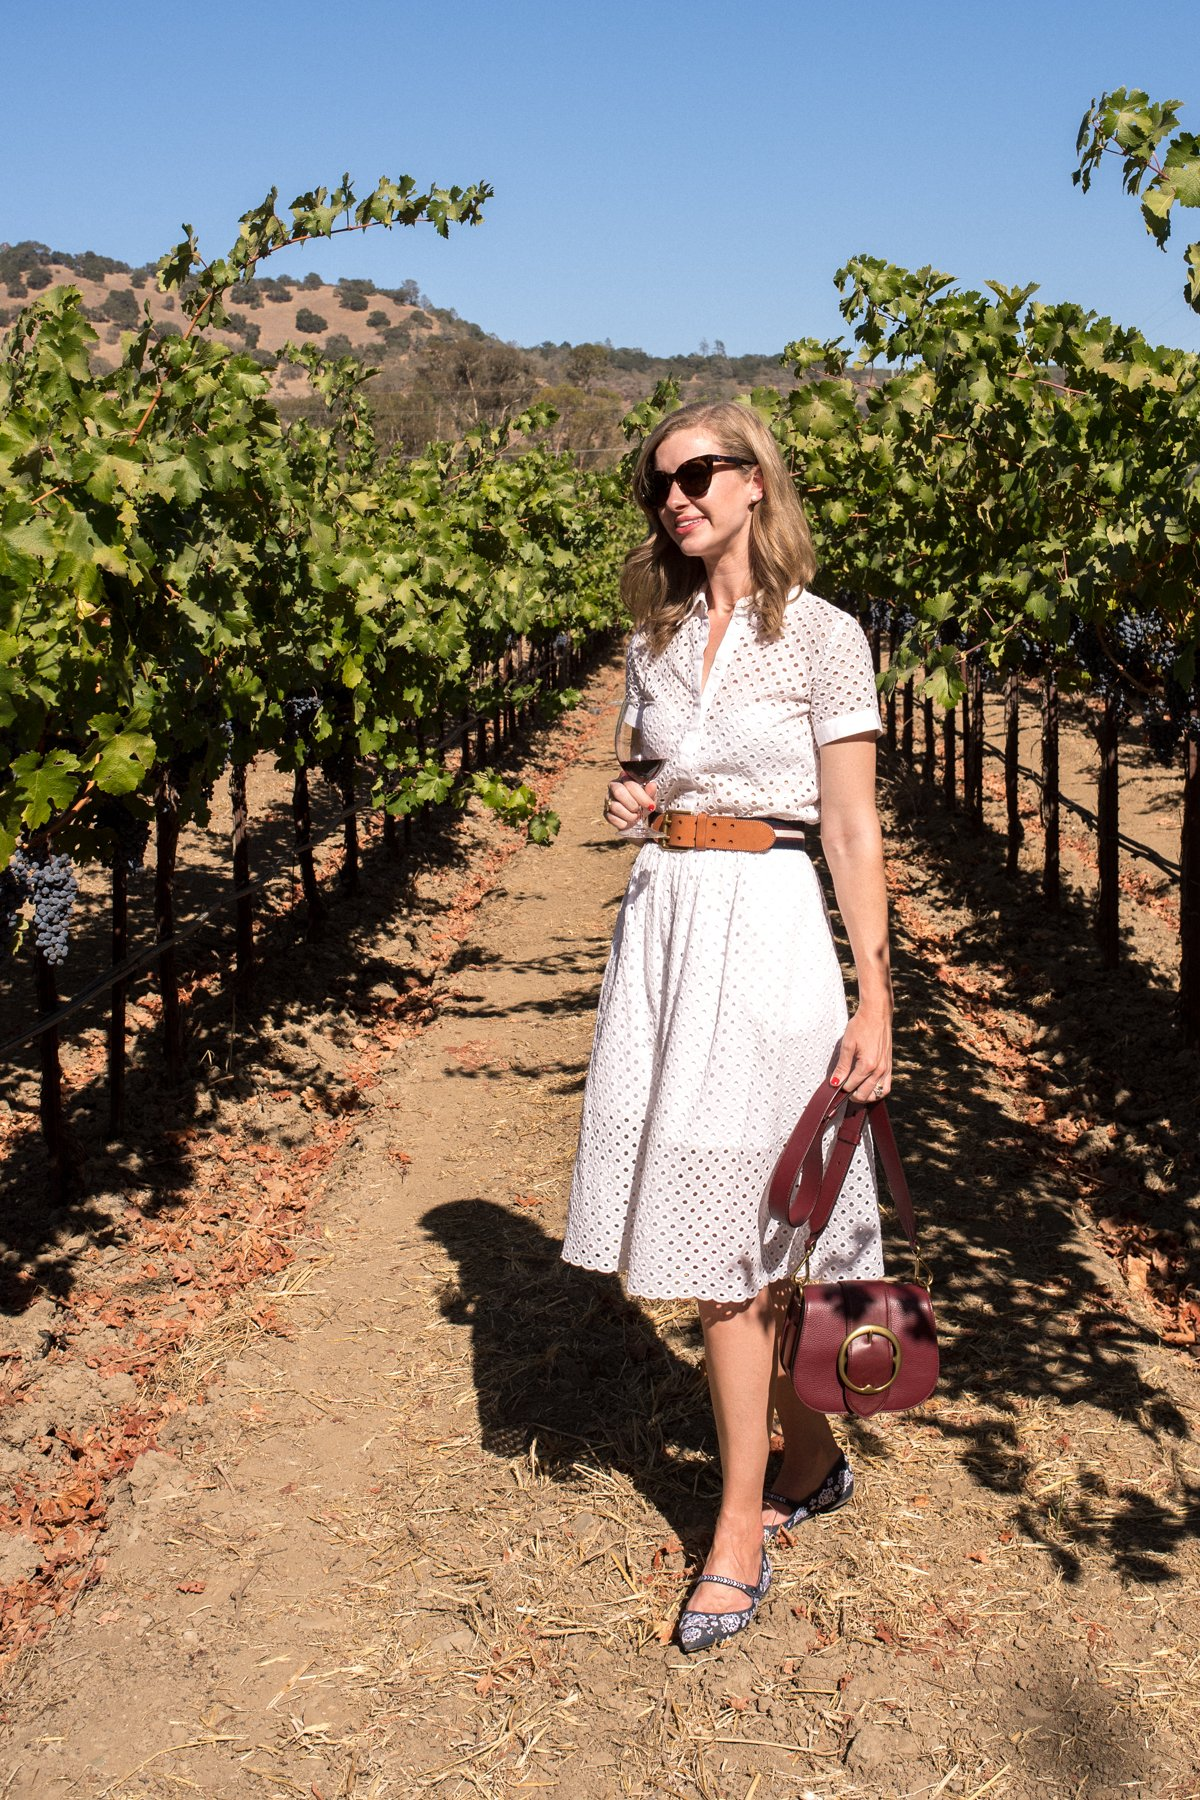 Stacie Flinner x Napa Valley Girls Getaway-33.jpg